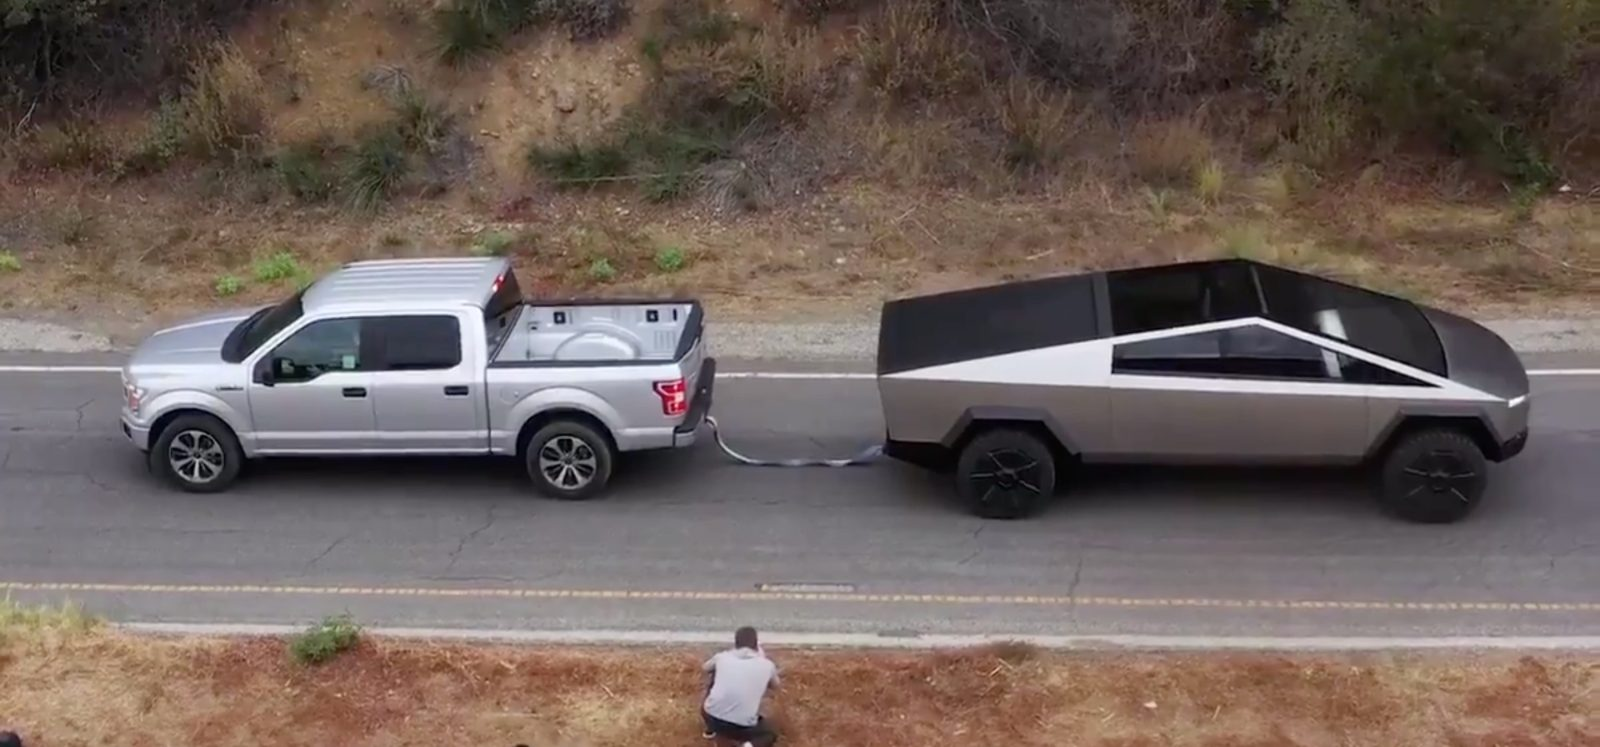 Watch Tesla Cybertruck in tug of war against Ford F150 and size comparison